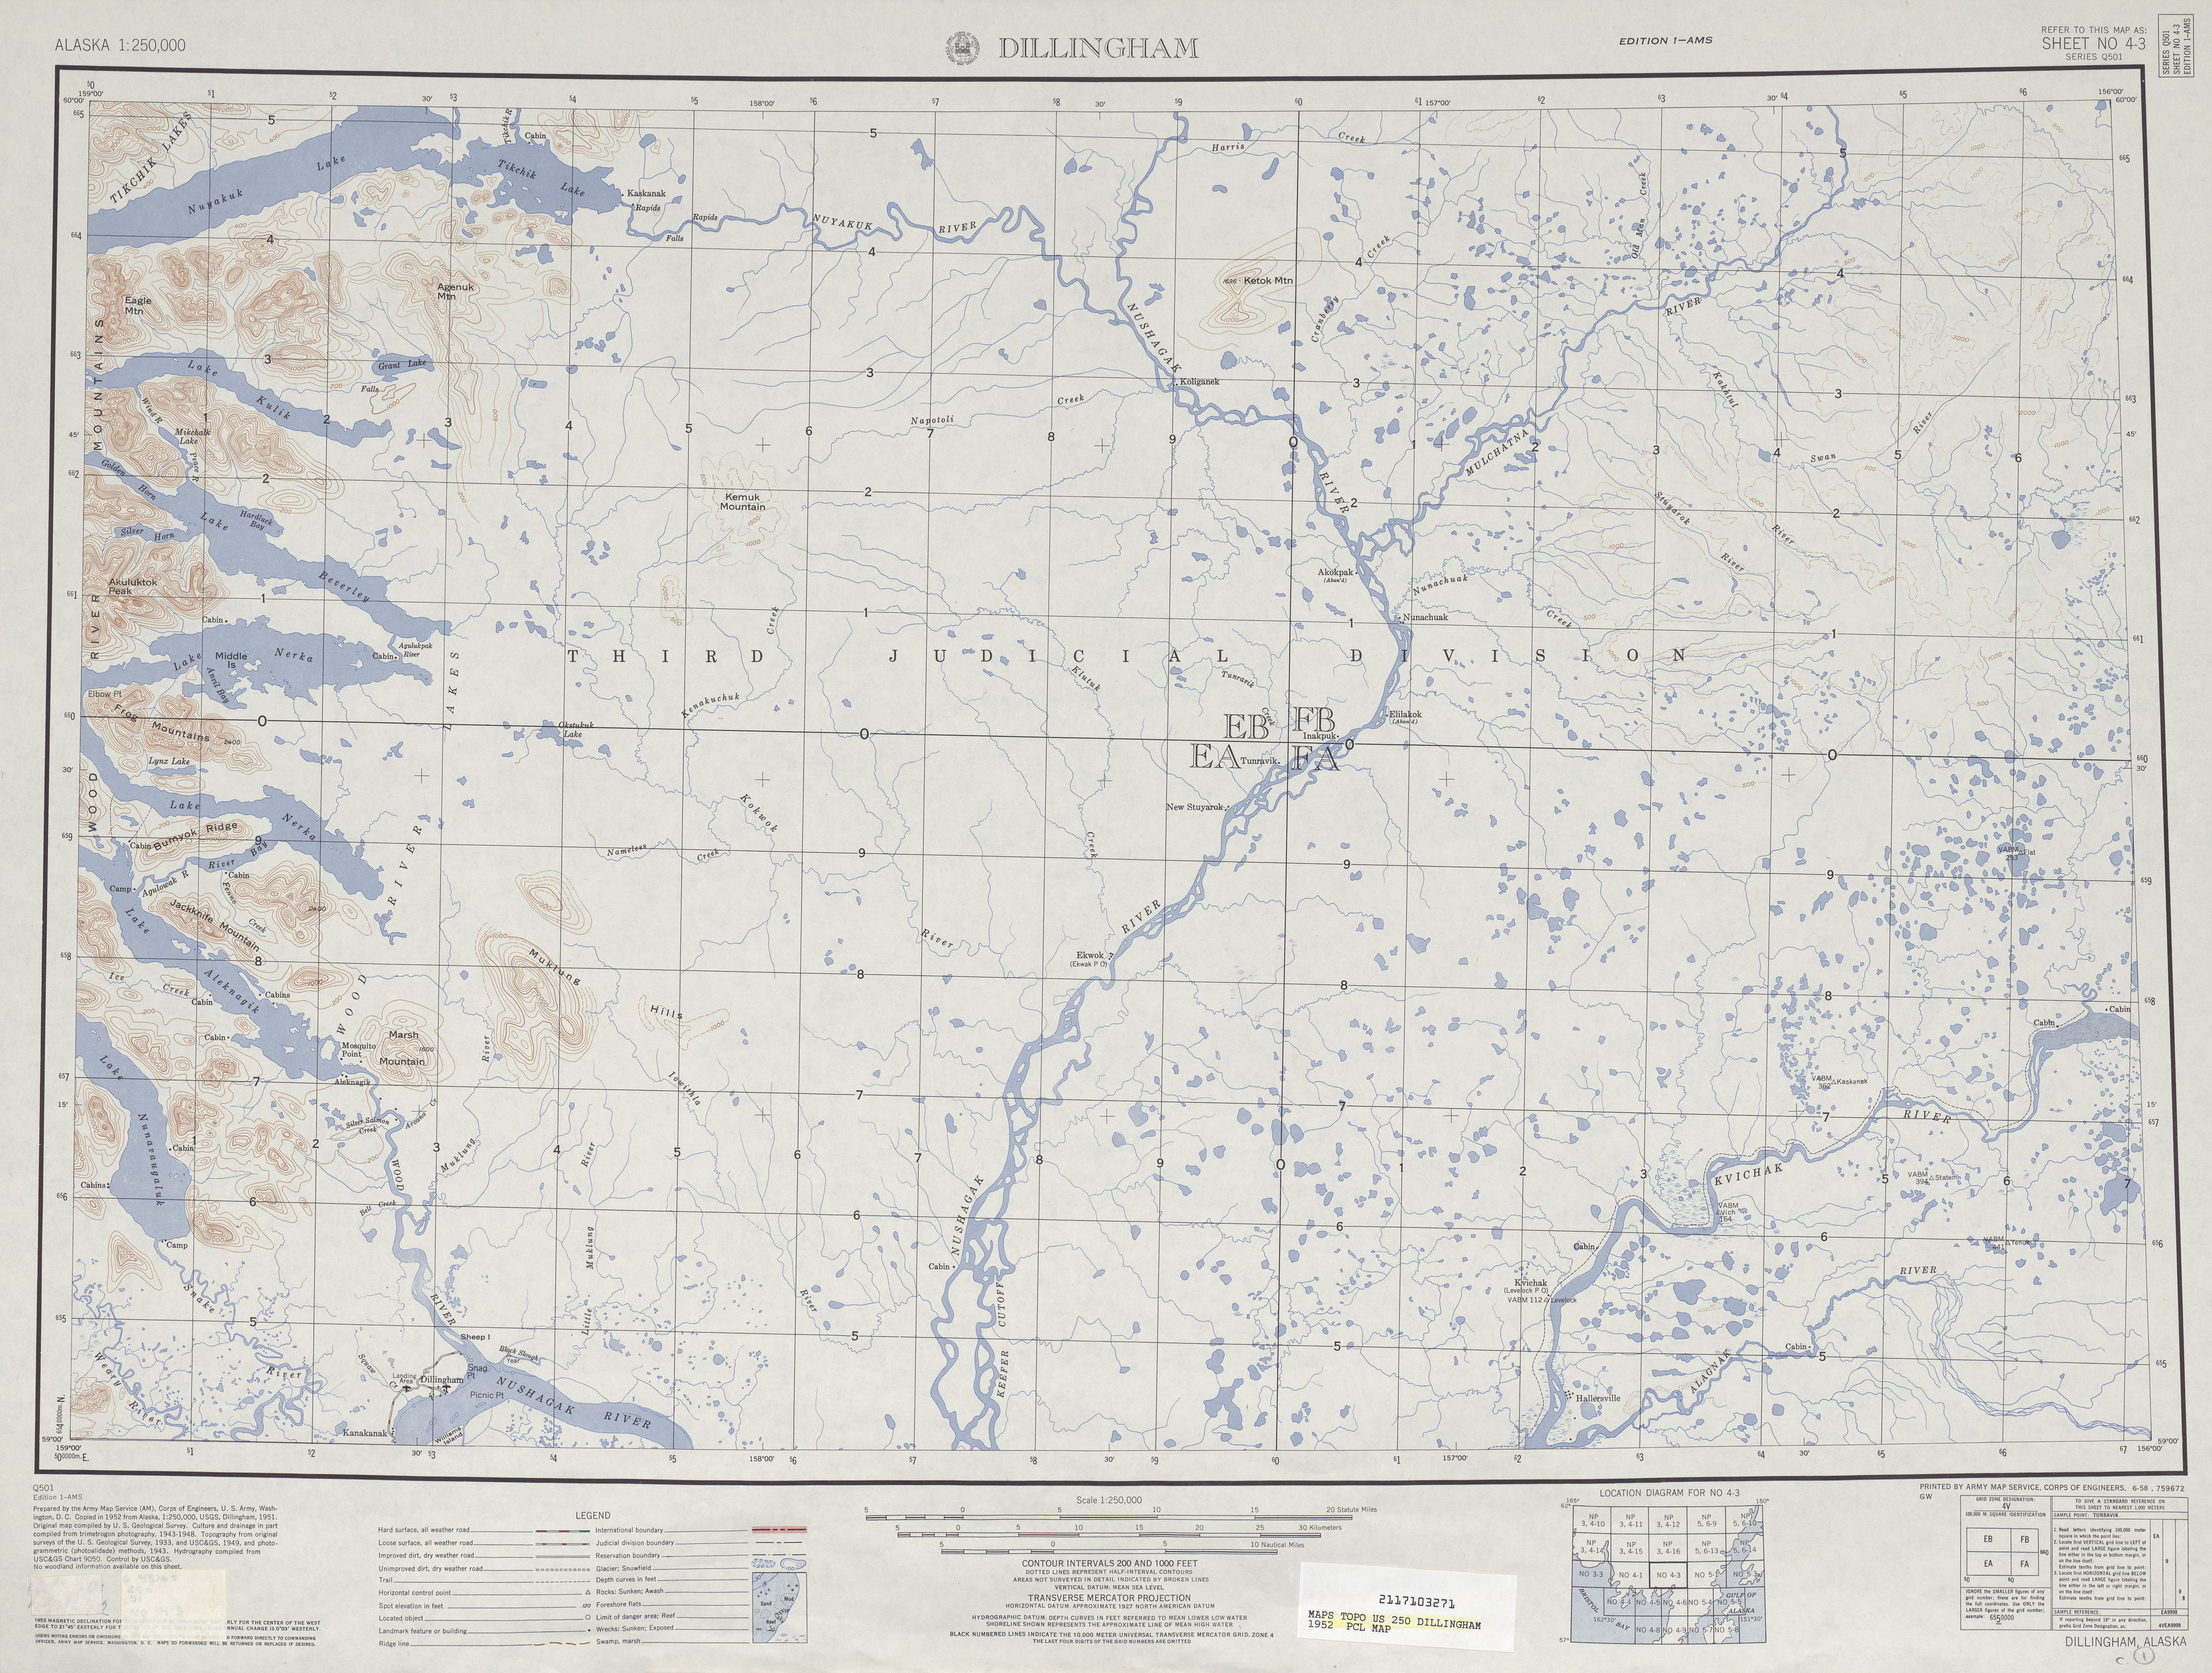 Dillingham Topographic Map Sheet, United States 1952